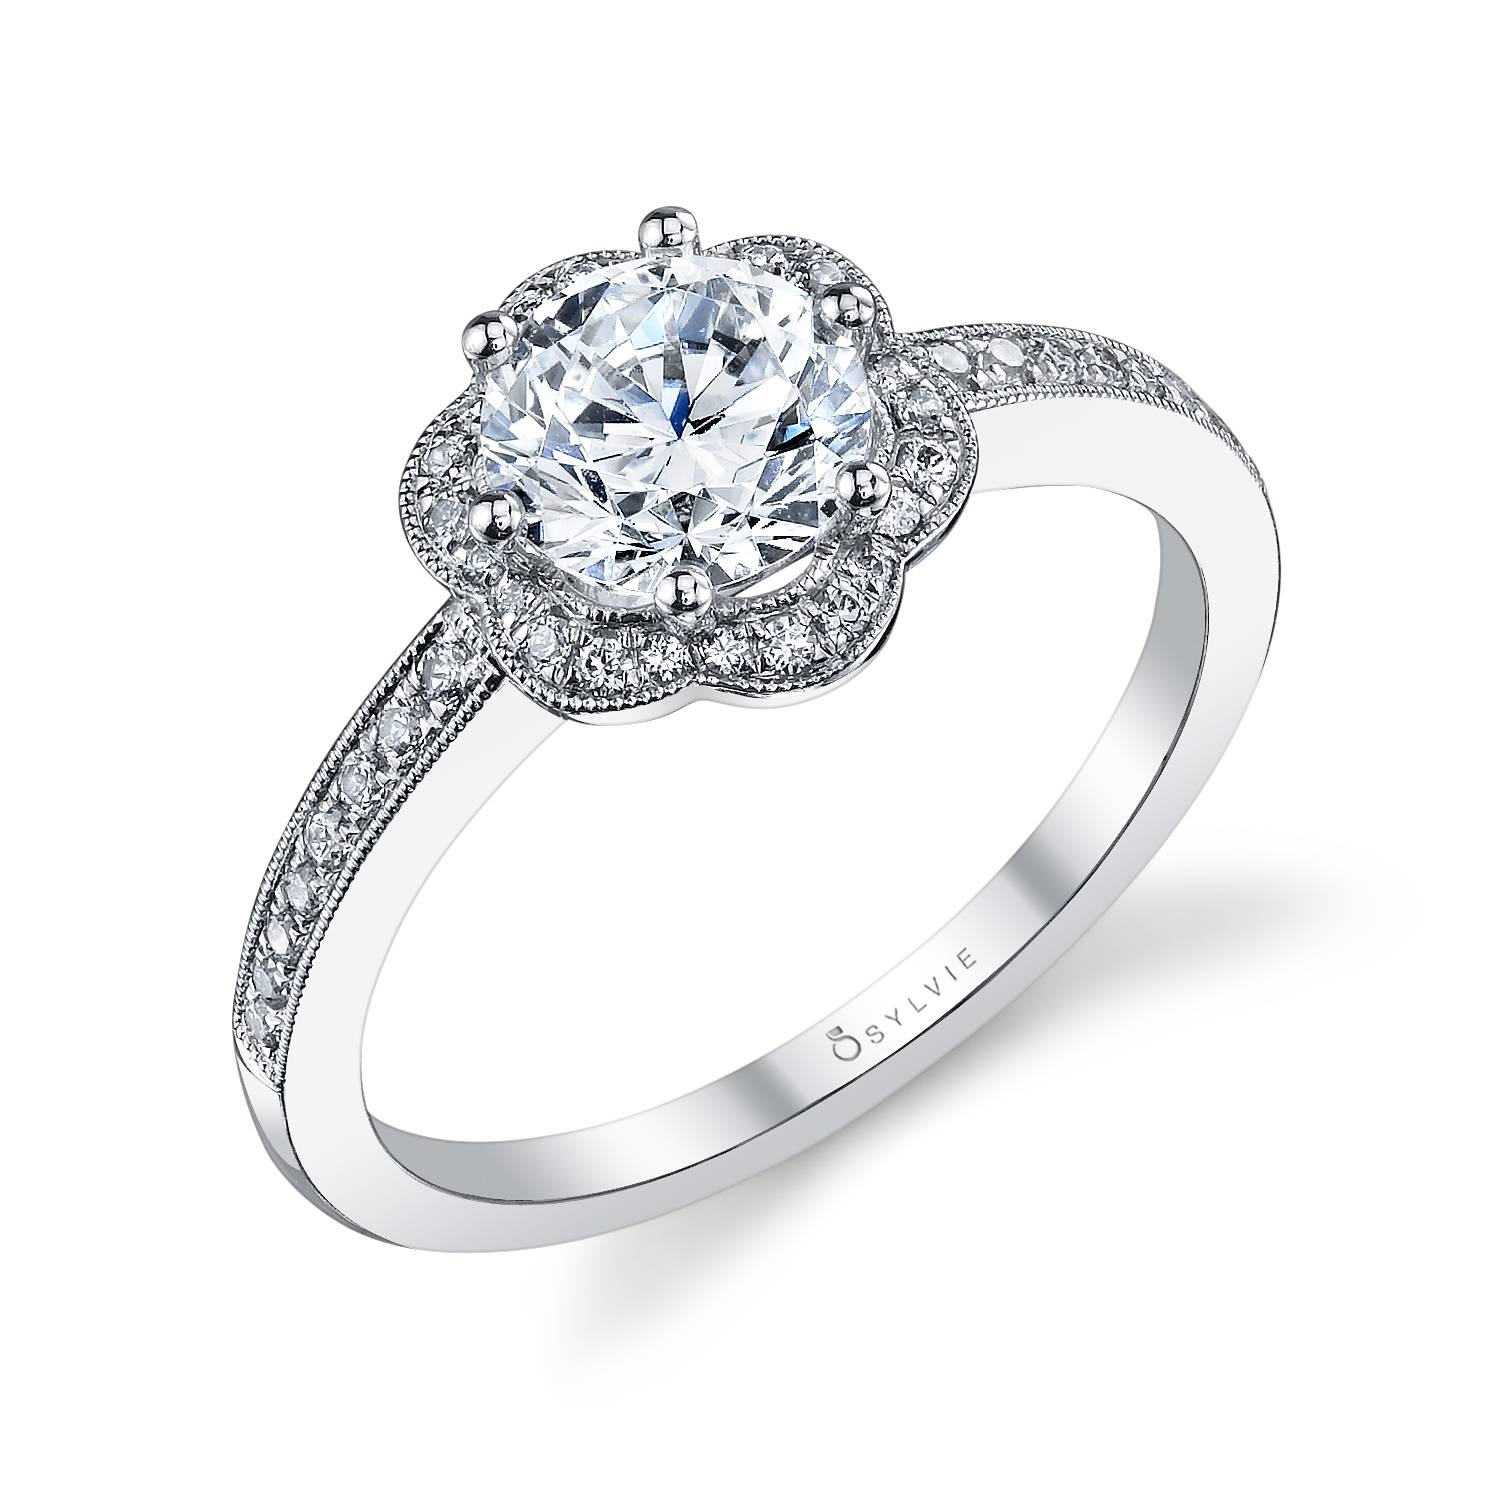 Flower Halo Prong Set Engagement Ring – Alexis Diamond Housealexis Regarding Jewelry Stores Wedding Rings (View 12 of 15)